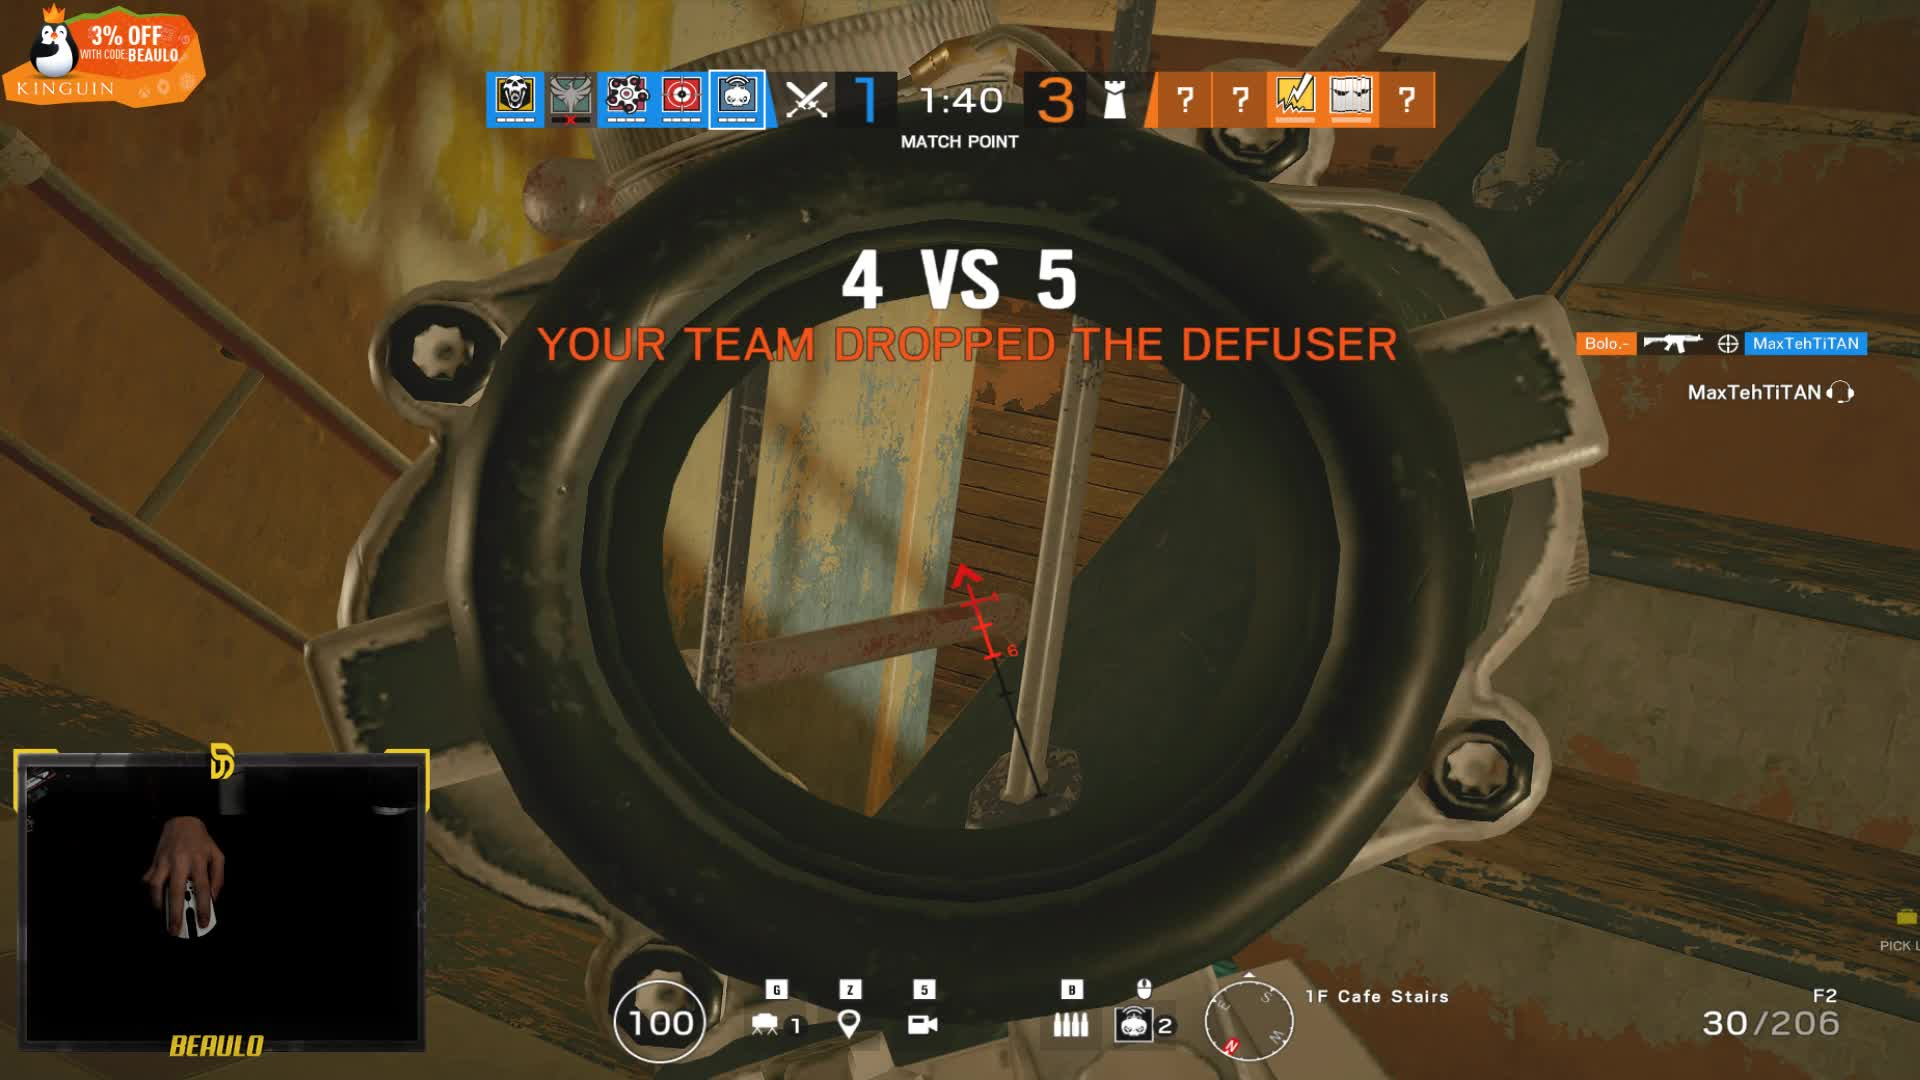 Beaulo - Epic Fragging shall ensue    with a mousecam  - Twitch